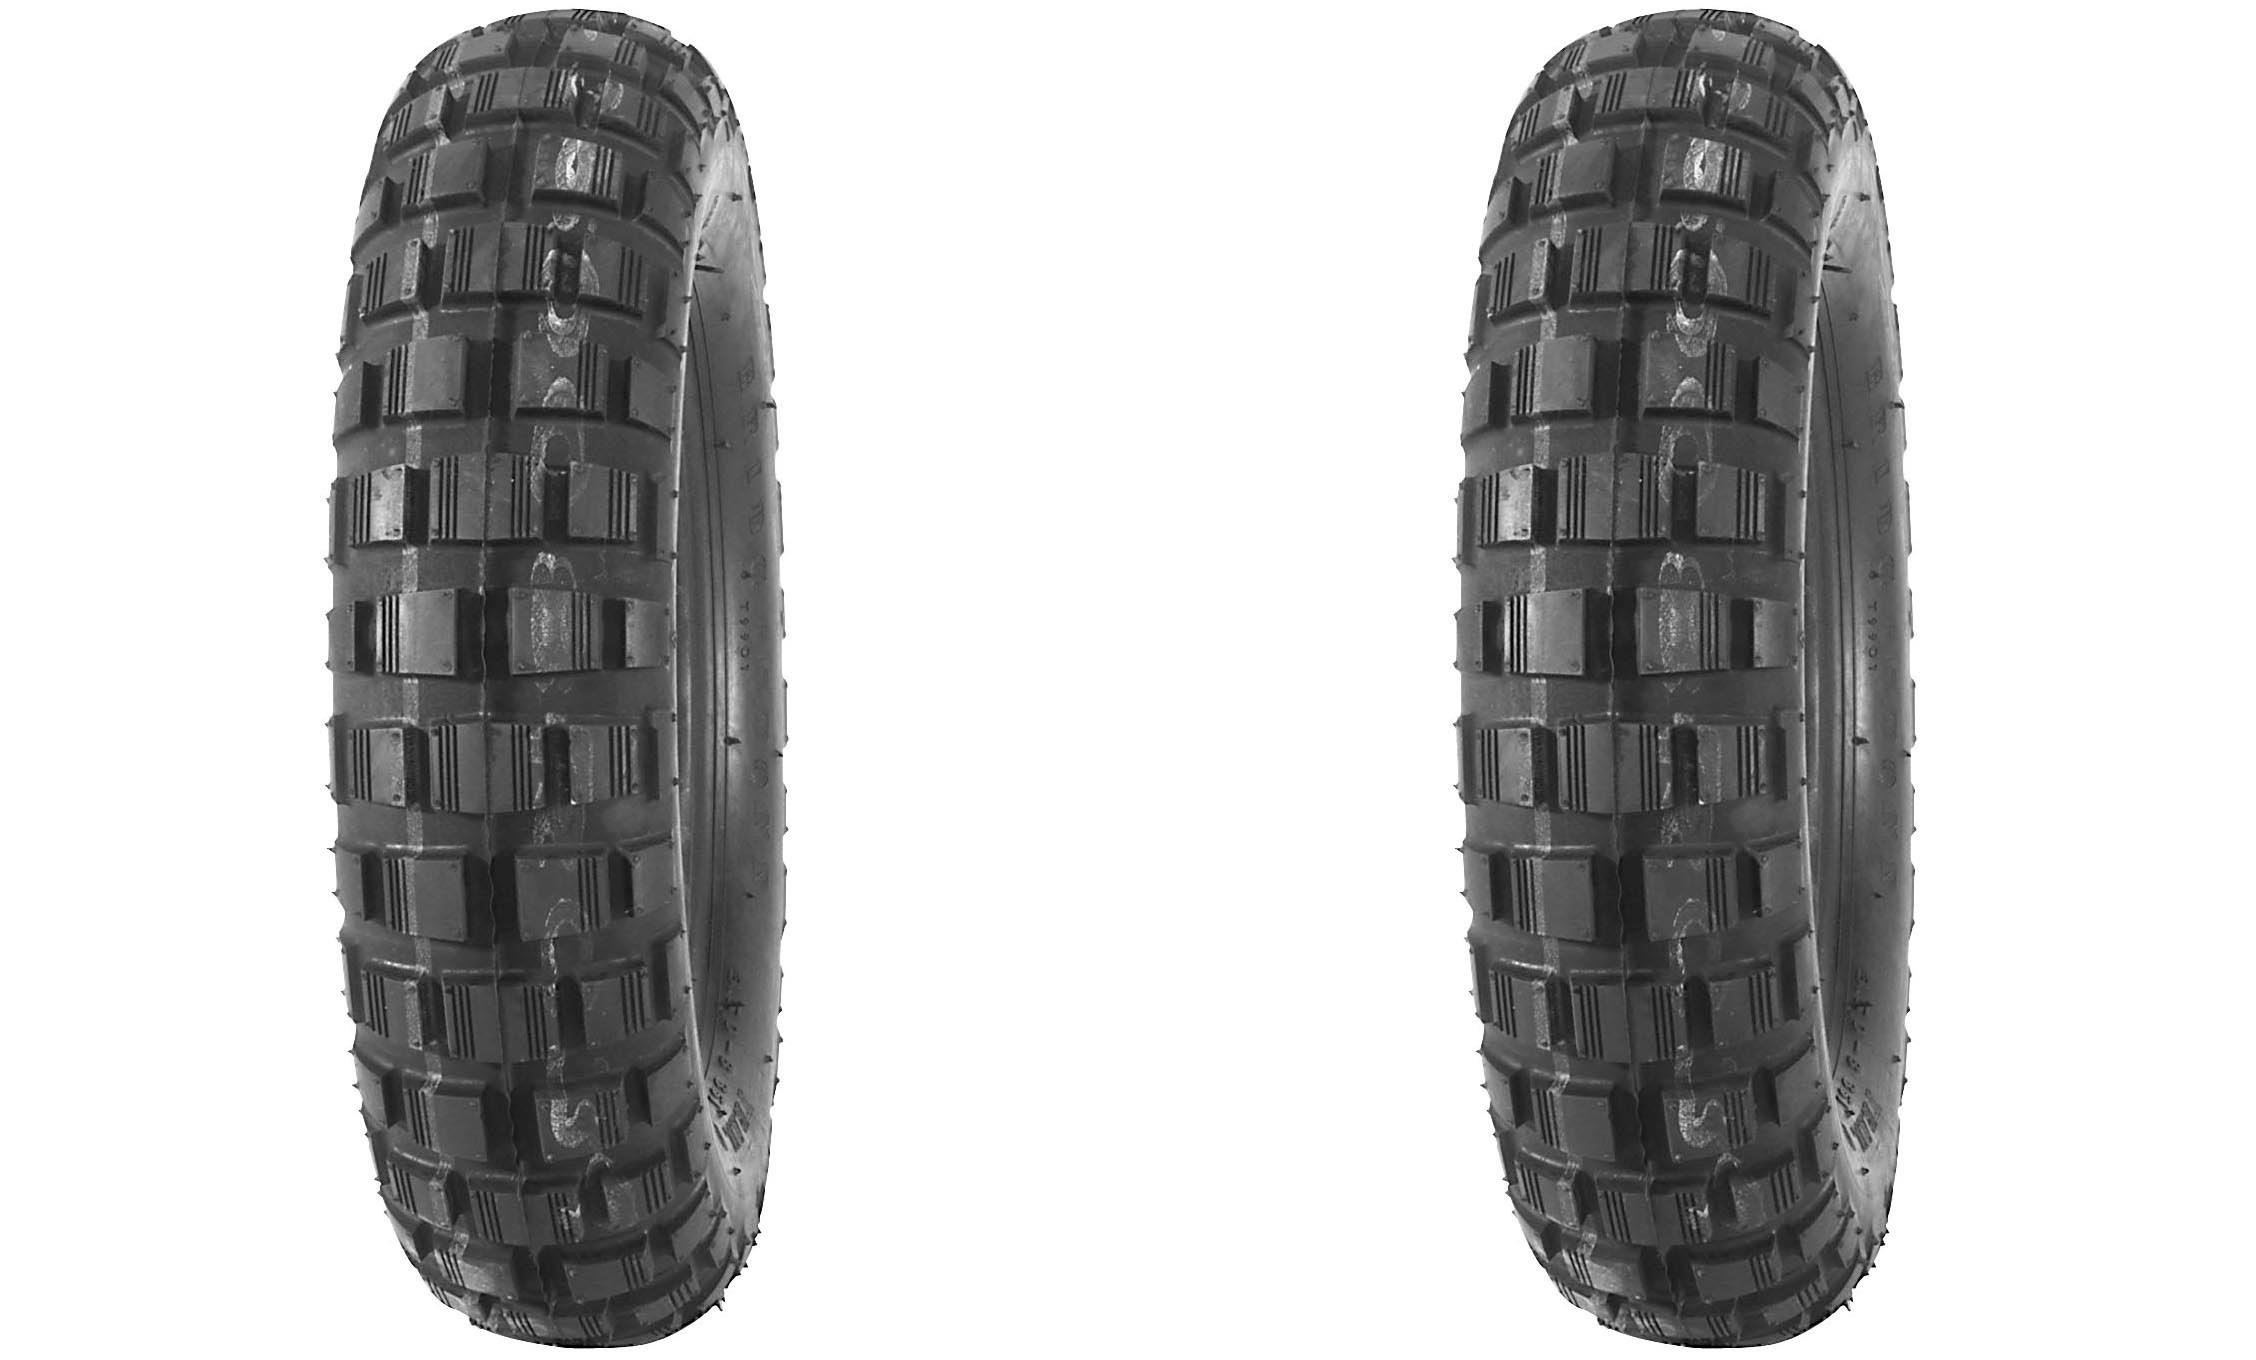 BRIDGESTONE Blackwall Scooter Front/Rear Tire Set, 400-10